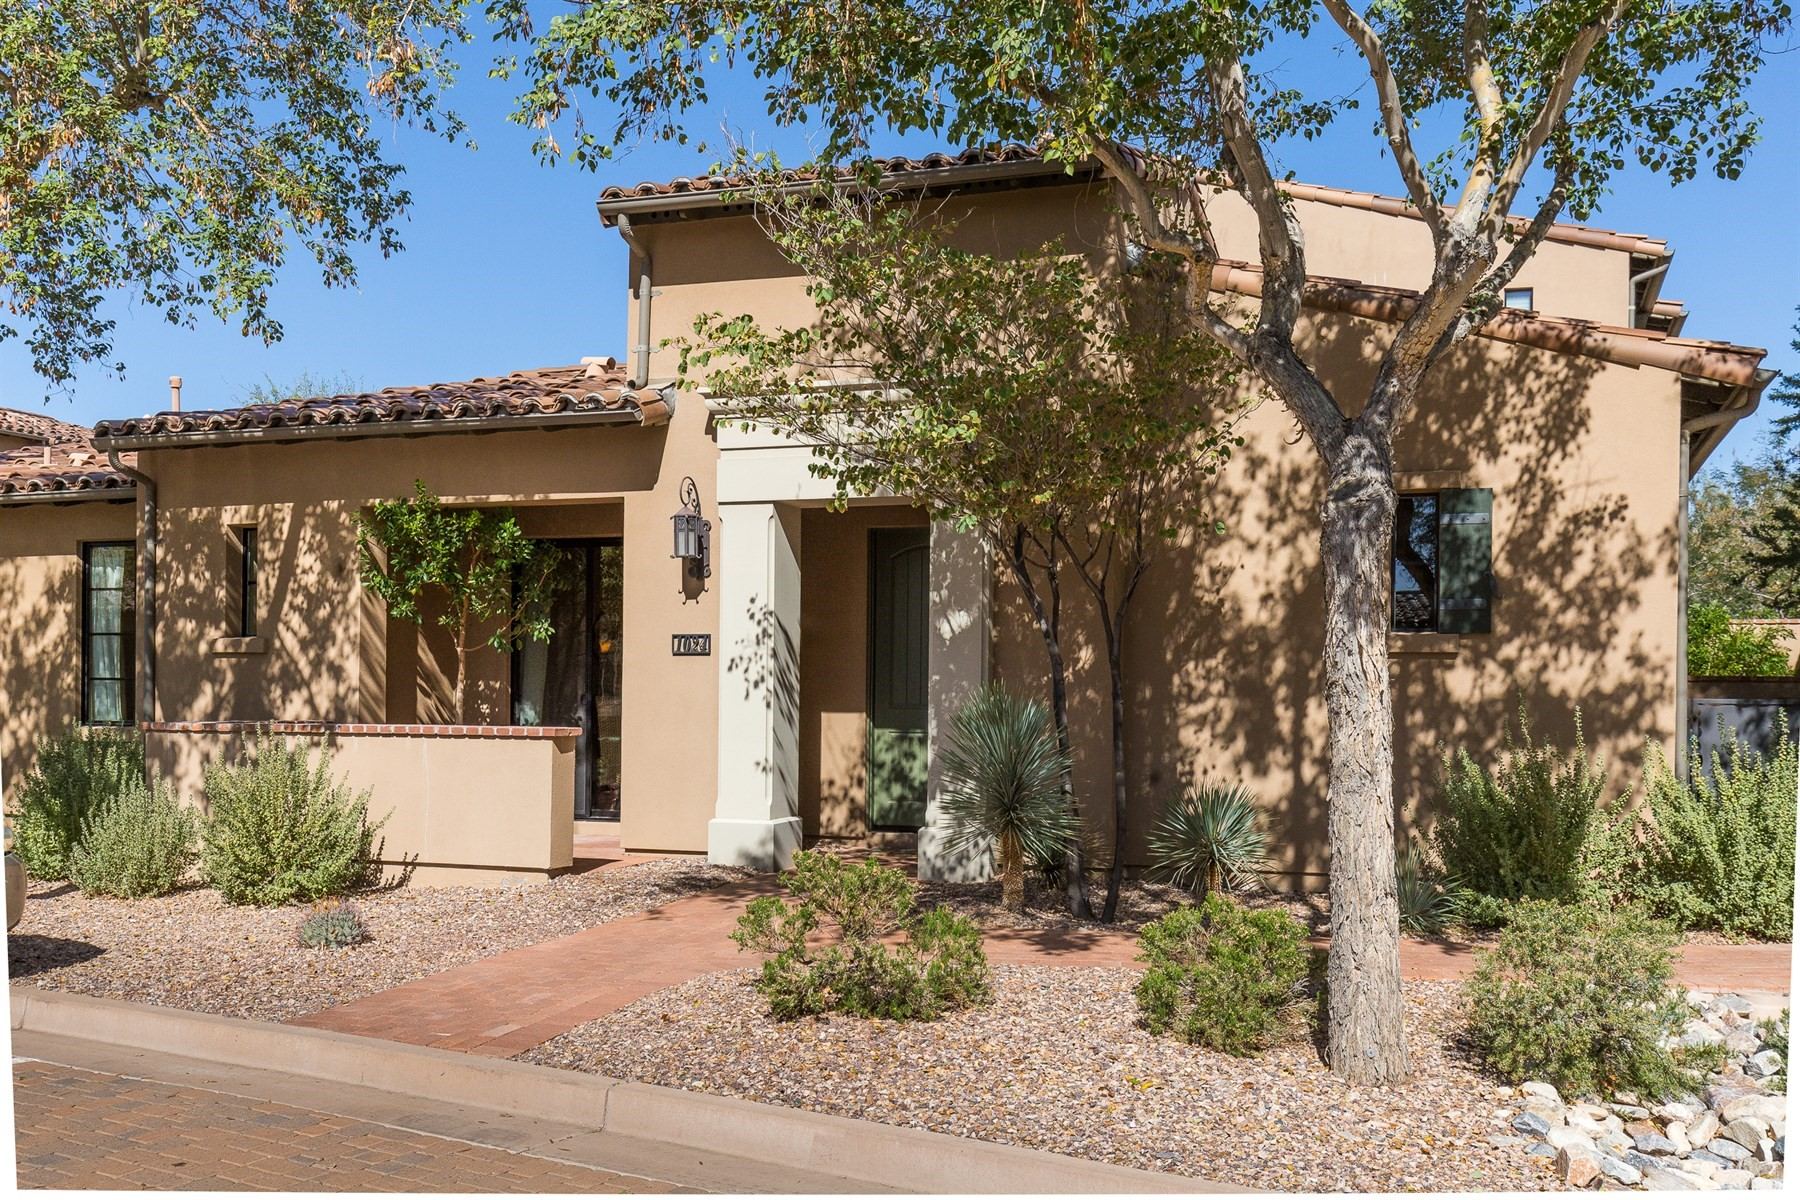 Townhouse for Sale at Beautifully Upgraded DC Ranch Villa 18650 N Thompson Peak Pkwy #1024 Scottsdale, Arizona 85255 United States